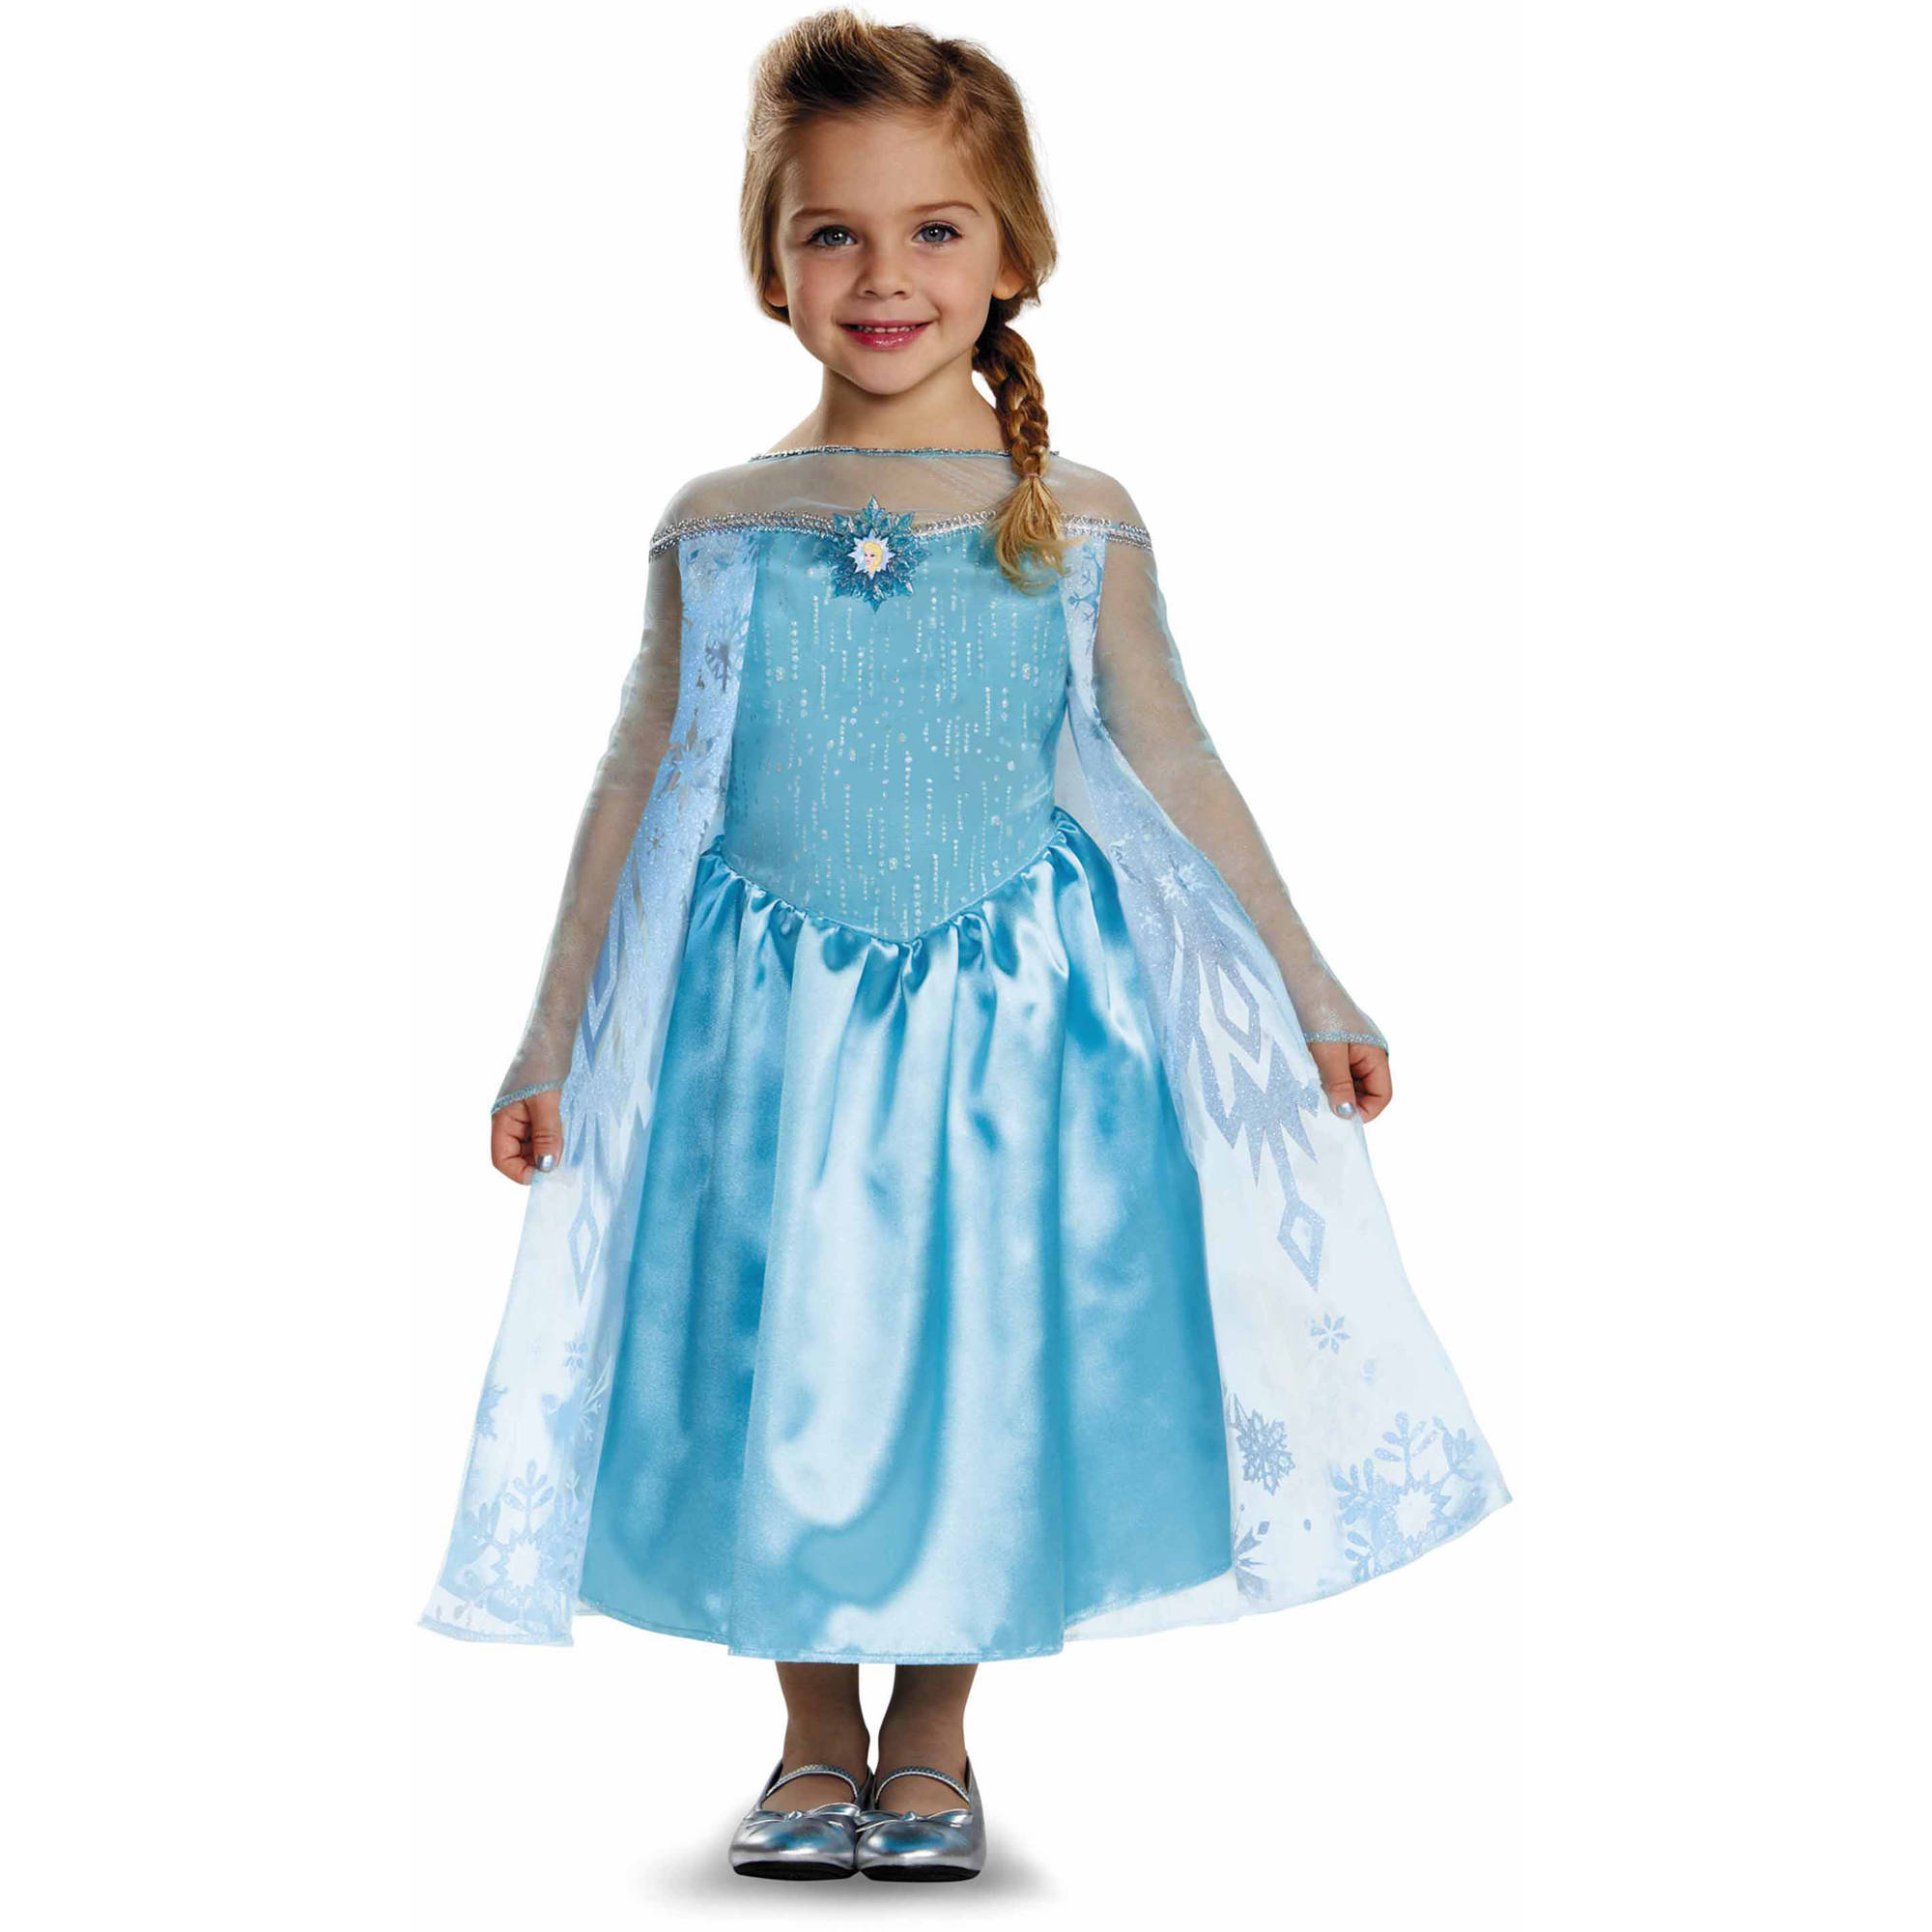 sc 1 st  Walmart & Frozen Elsa Child Gloves Dress Up / Role Play Accessory - Walmart.com